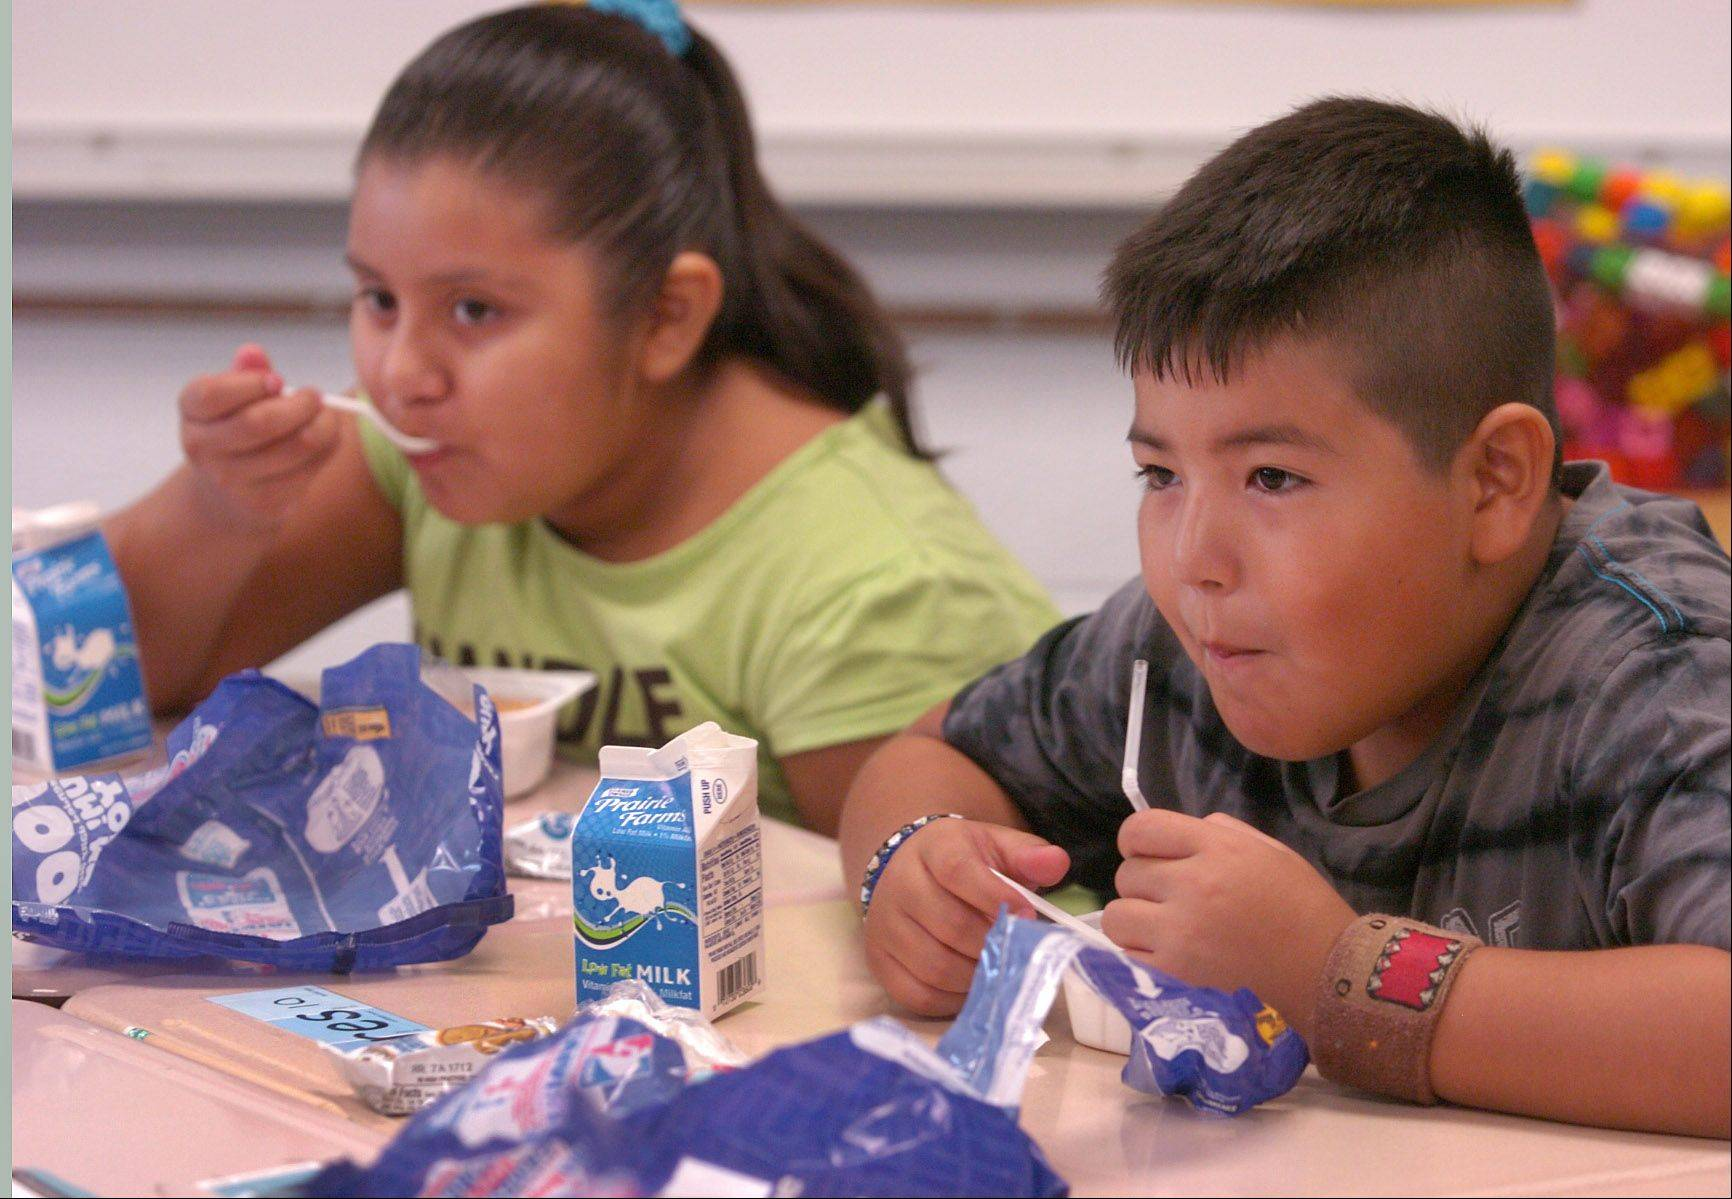 Fourth graders Lysandra Colin, left, and Andres Garcia take part in a new universal free breakfast program being piloted at Jane Addams Elementary School in Palatine.